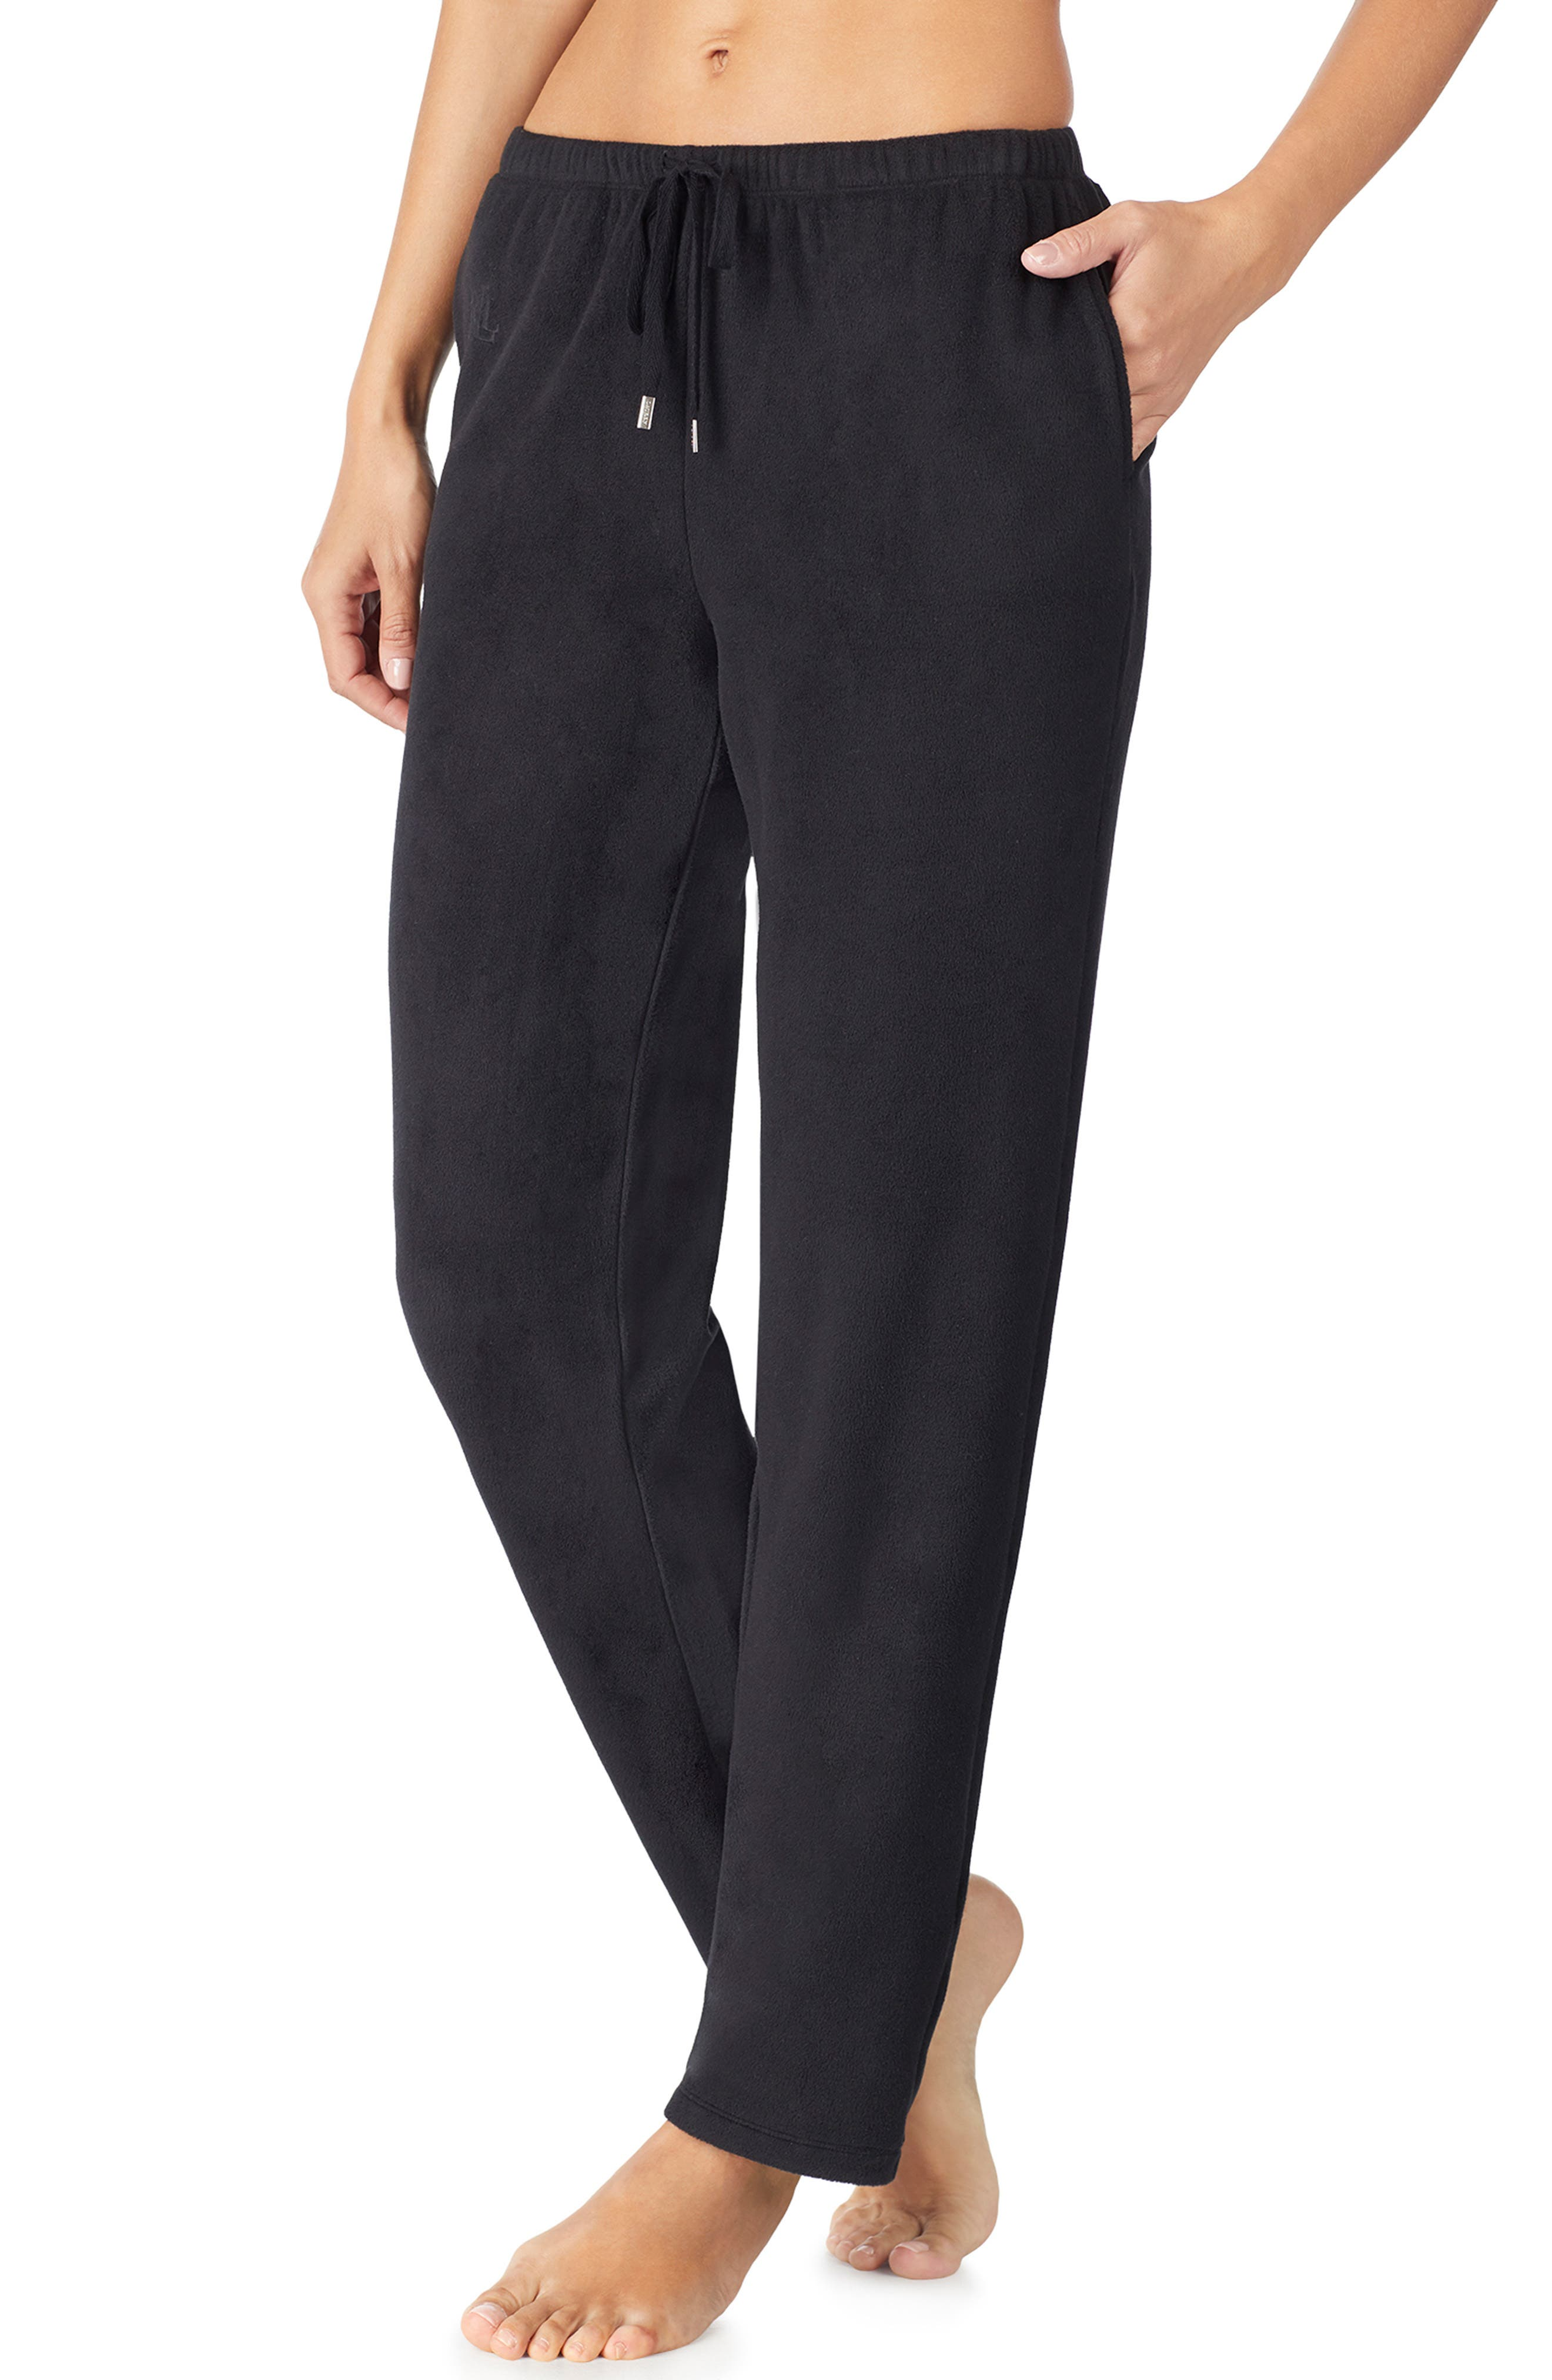 LAUREN RALPH LAUREN, Lounge Pants, Main thumbnail 1, color, BLACK